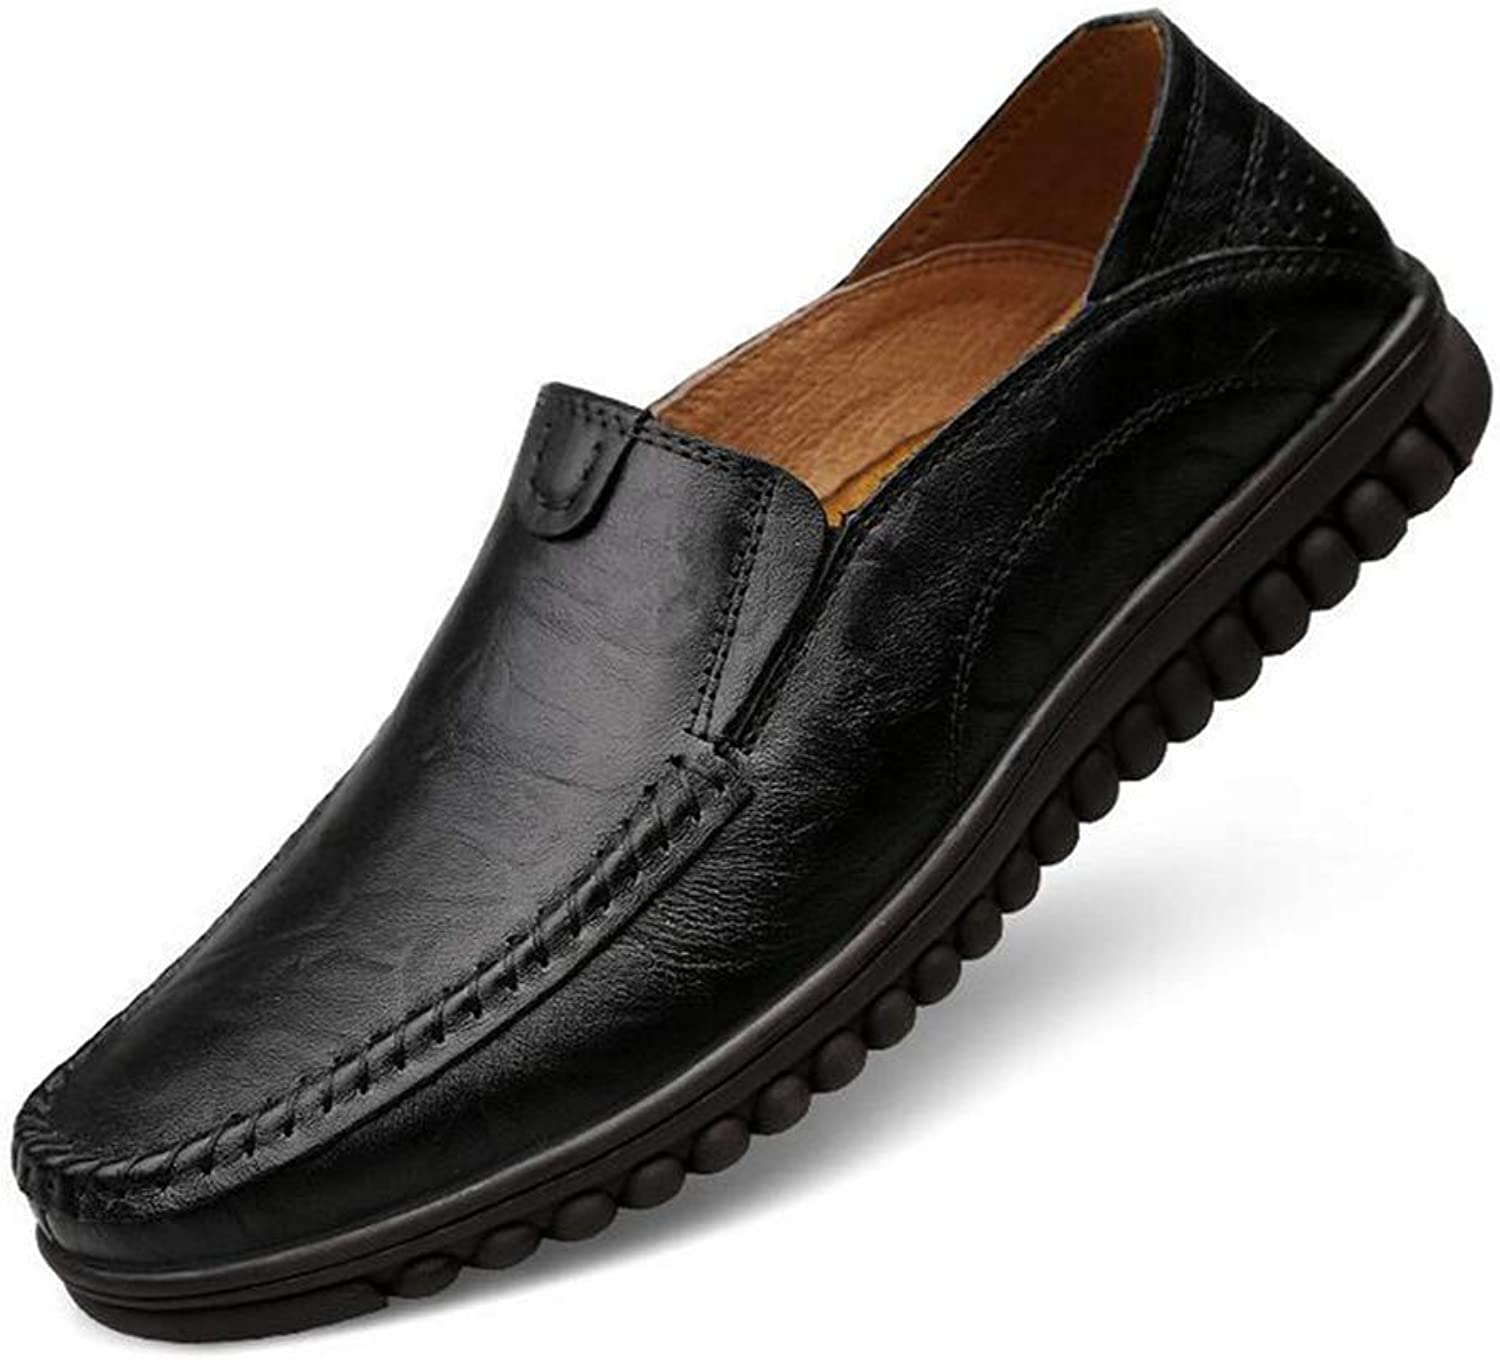 Y-H Men's Formal shoes, Leather Spring Fall Flat Casual Driving shoes, Formal Business shoes,Loafers & Slip-Ons Lazy shoes,black,43